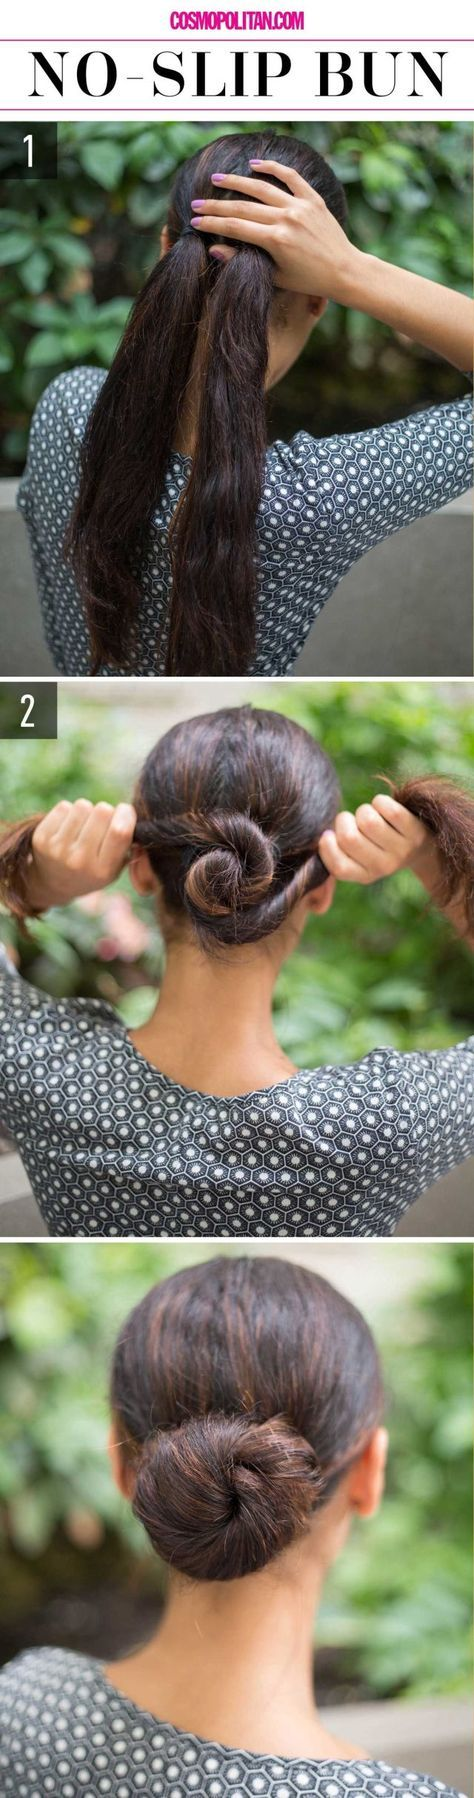 supereasy hairstyles for lazy girls who canut even hair styles